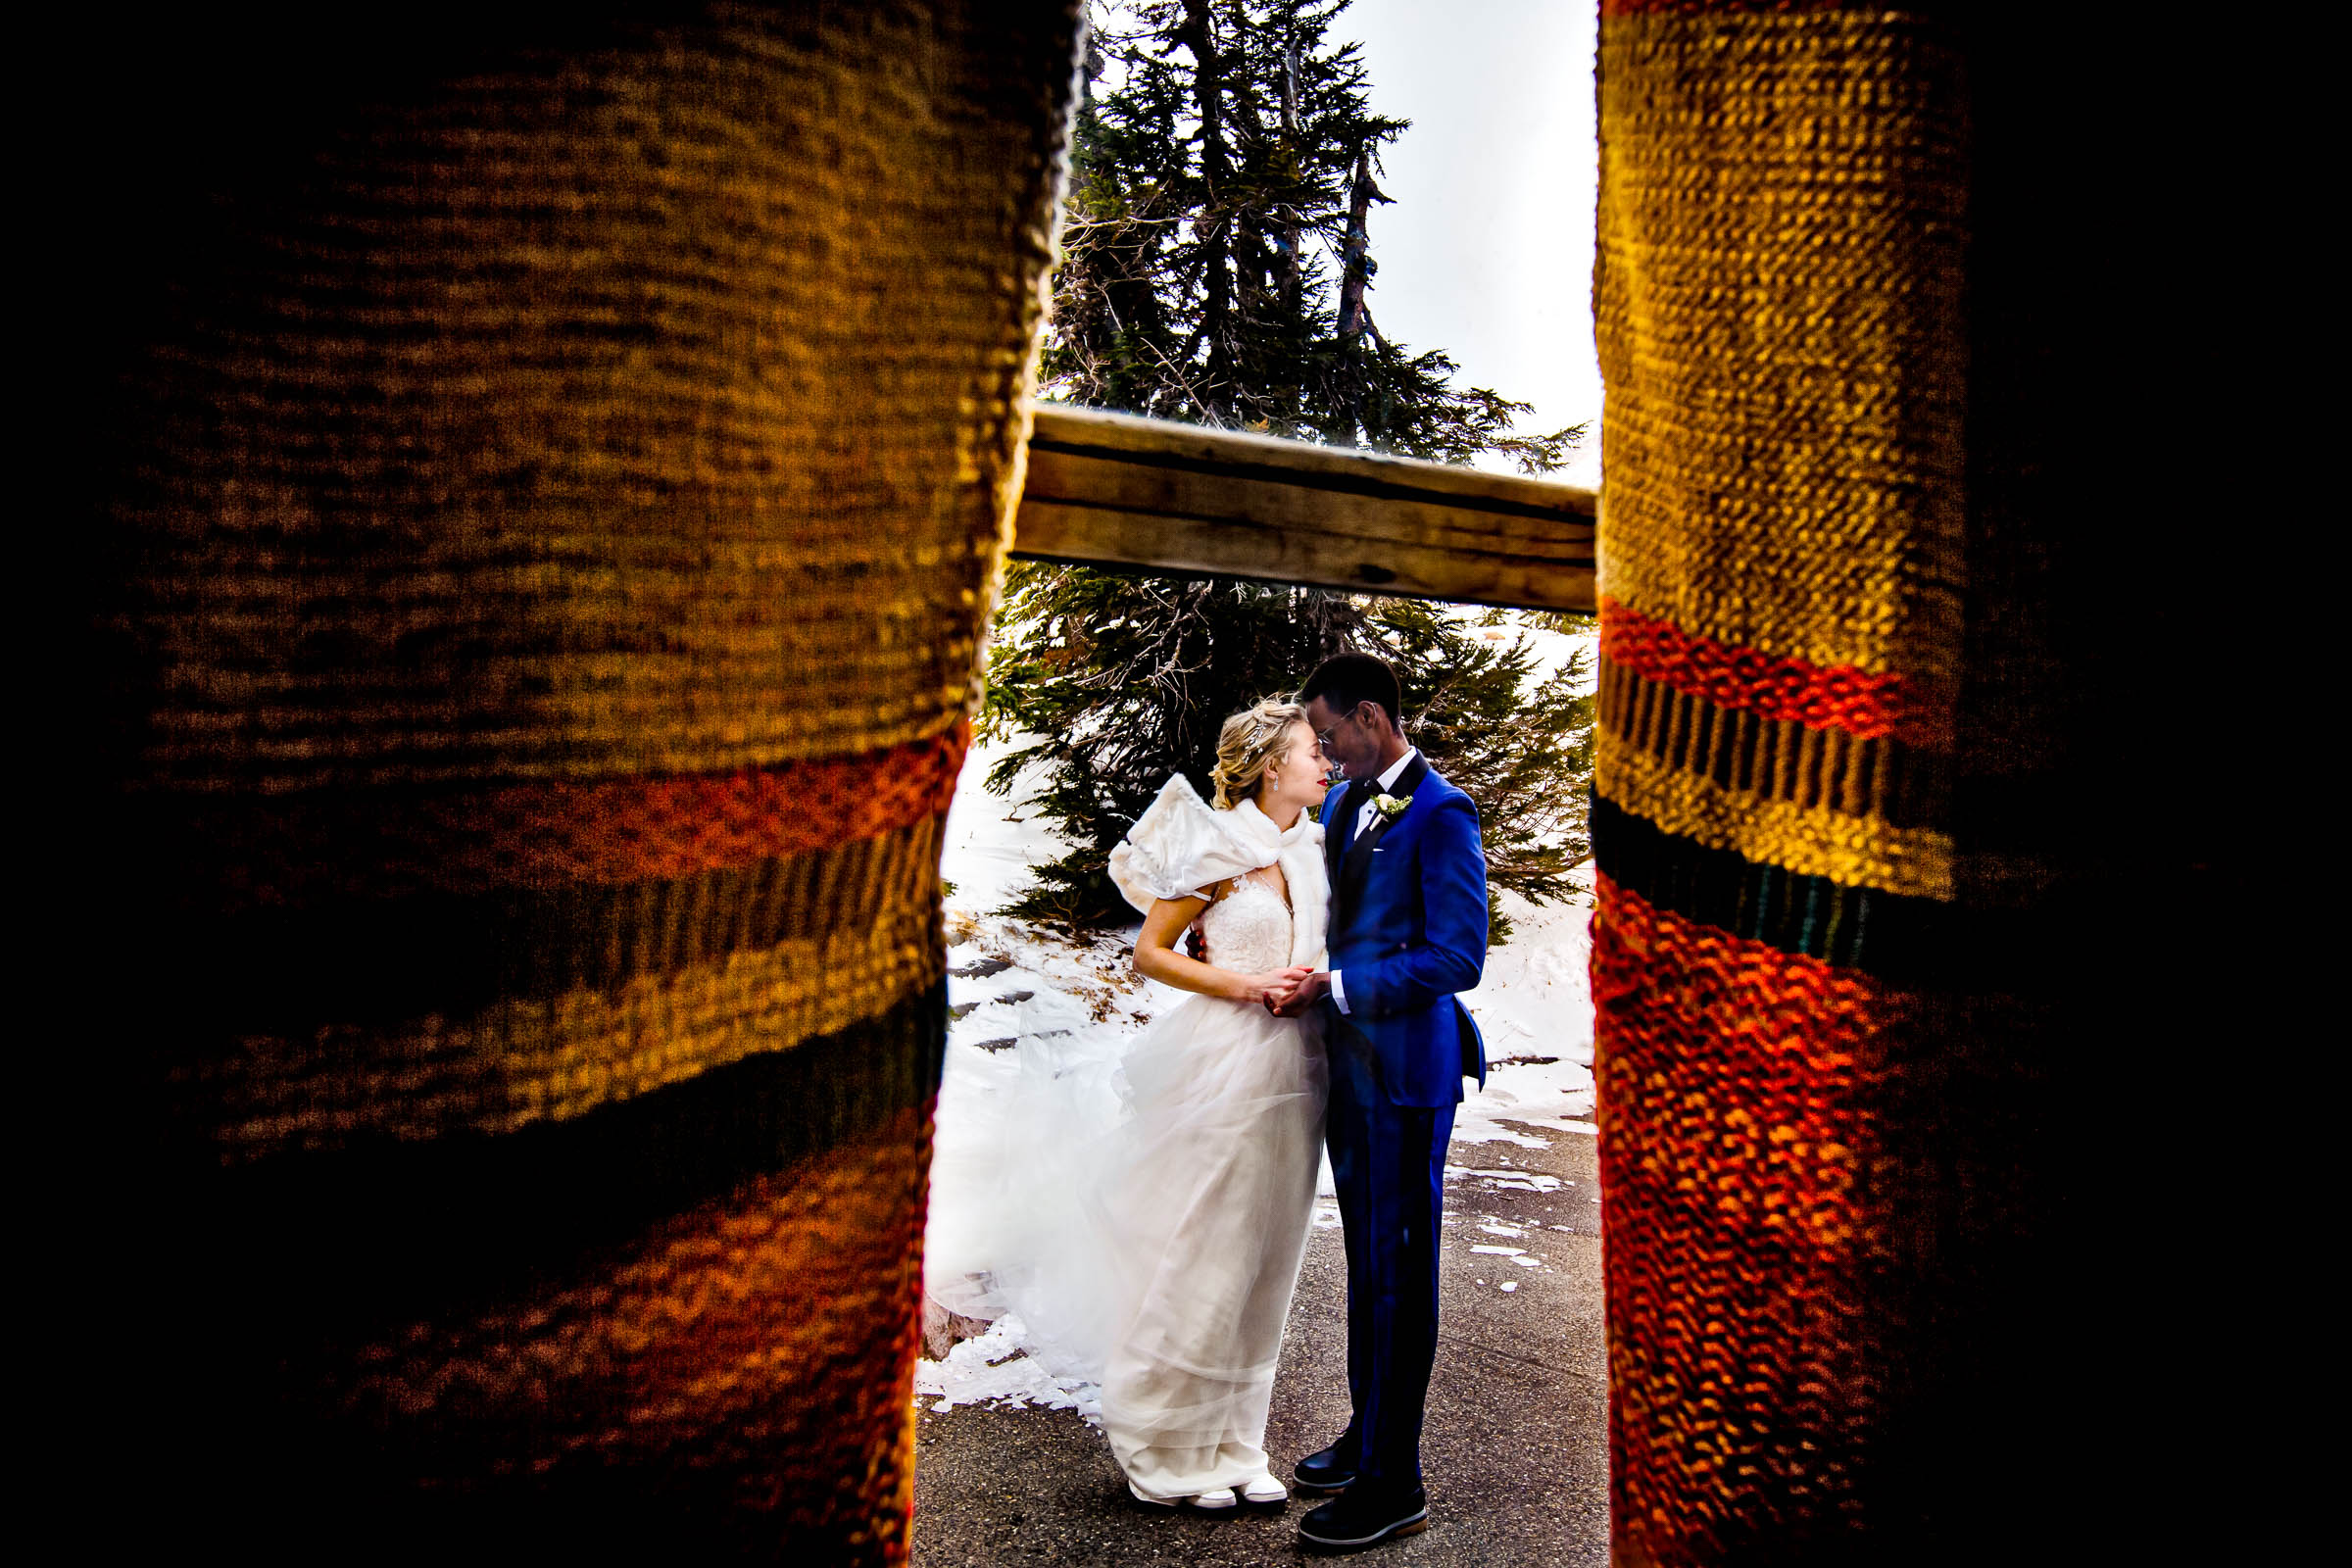 Bride and groom portrait through a colorful window at their Timberline Lodge Wedding